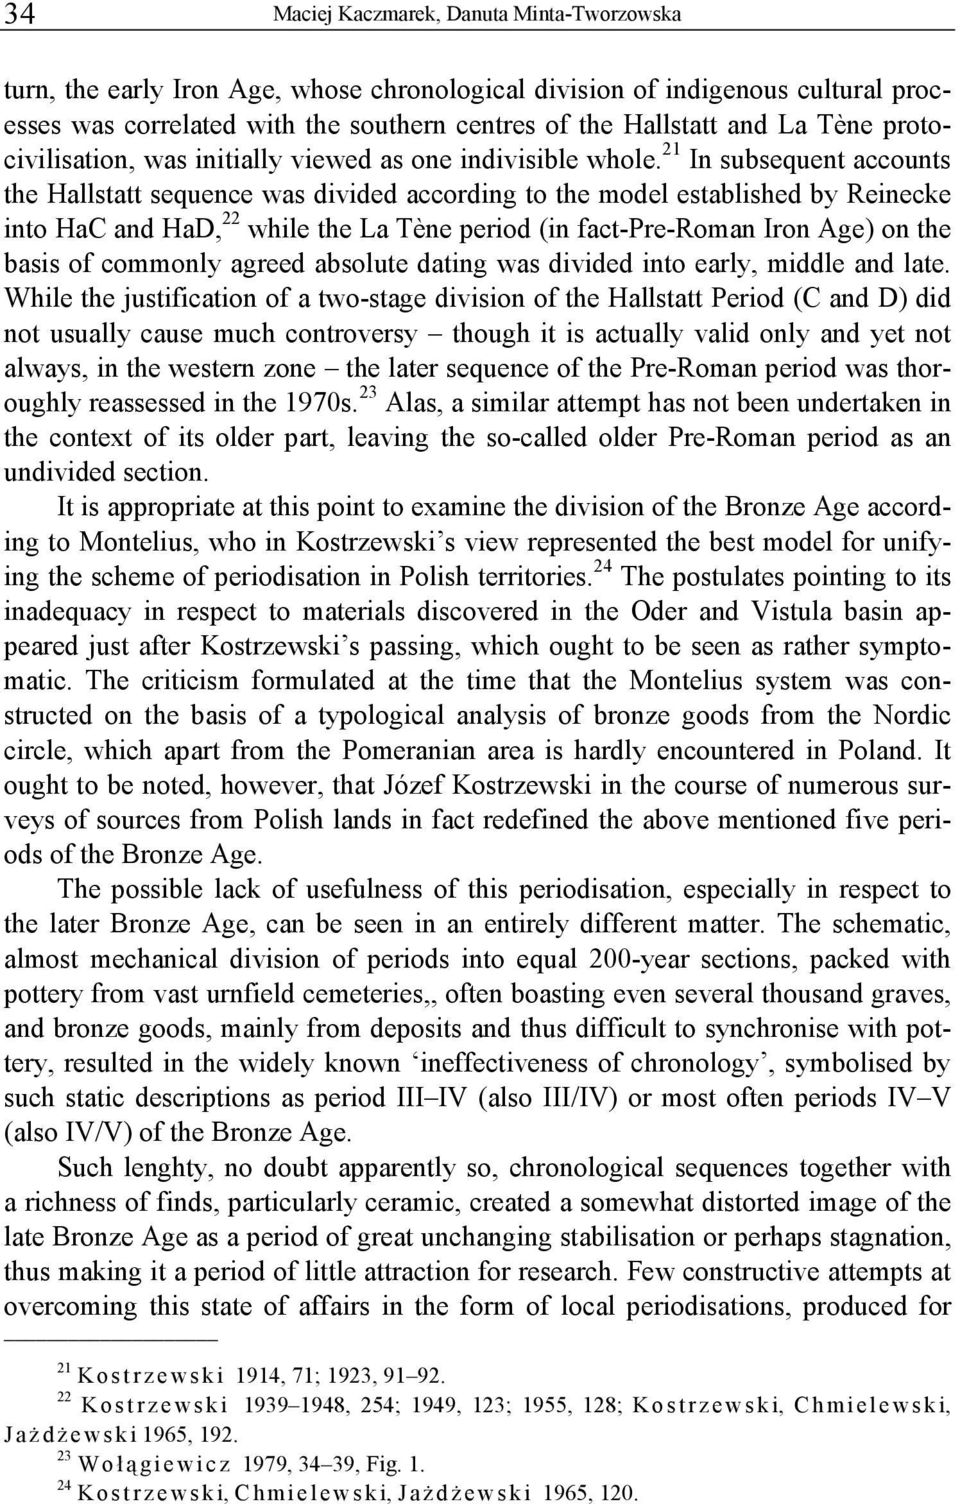 21 In subsequent accounts the Hallstatt sequence was divided according to the model established by Reinecke into HaC and HaD, 22 while the La Tène period (in fact-pre-roman Iron Age) on the basis of